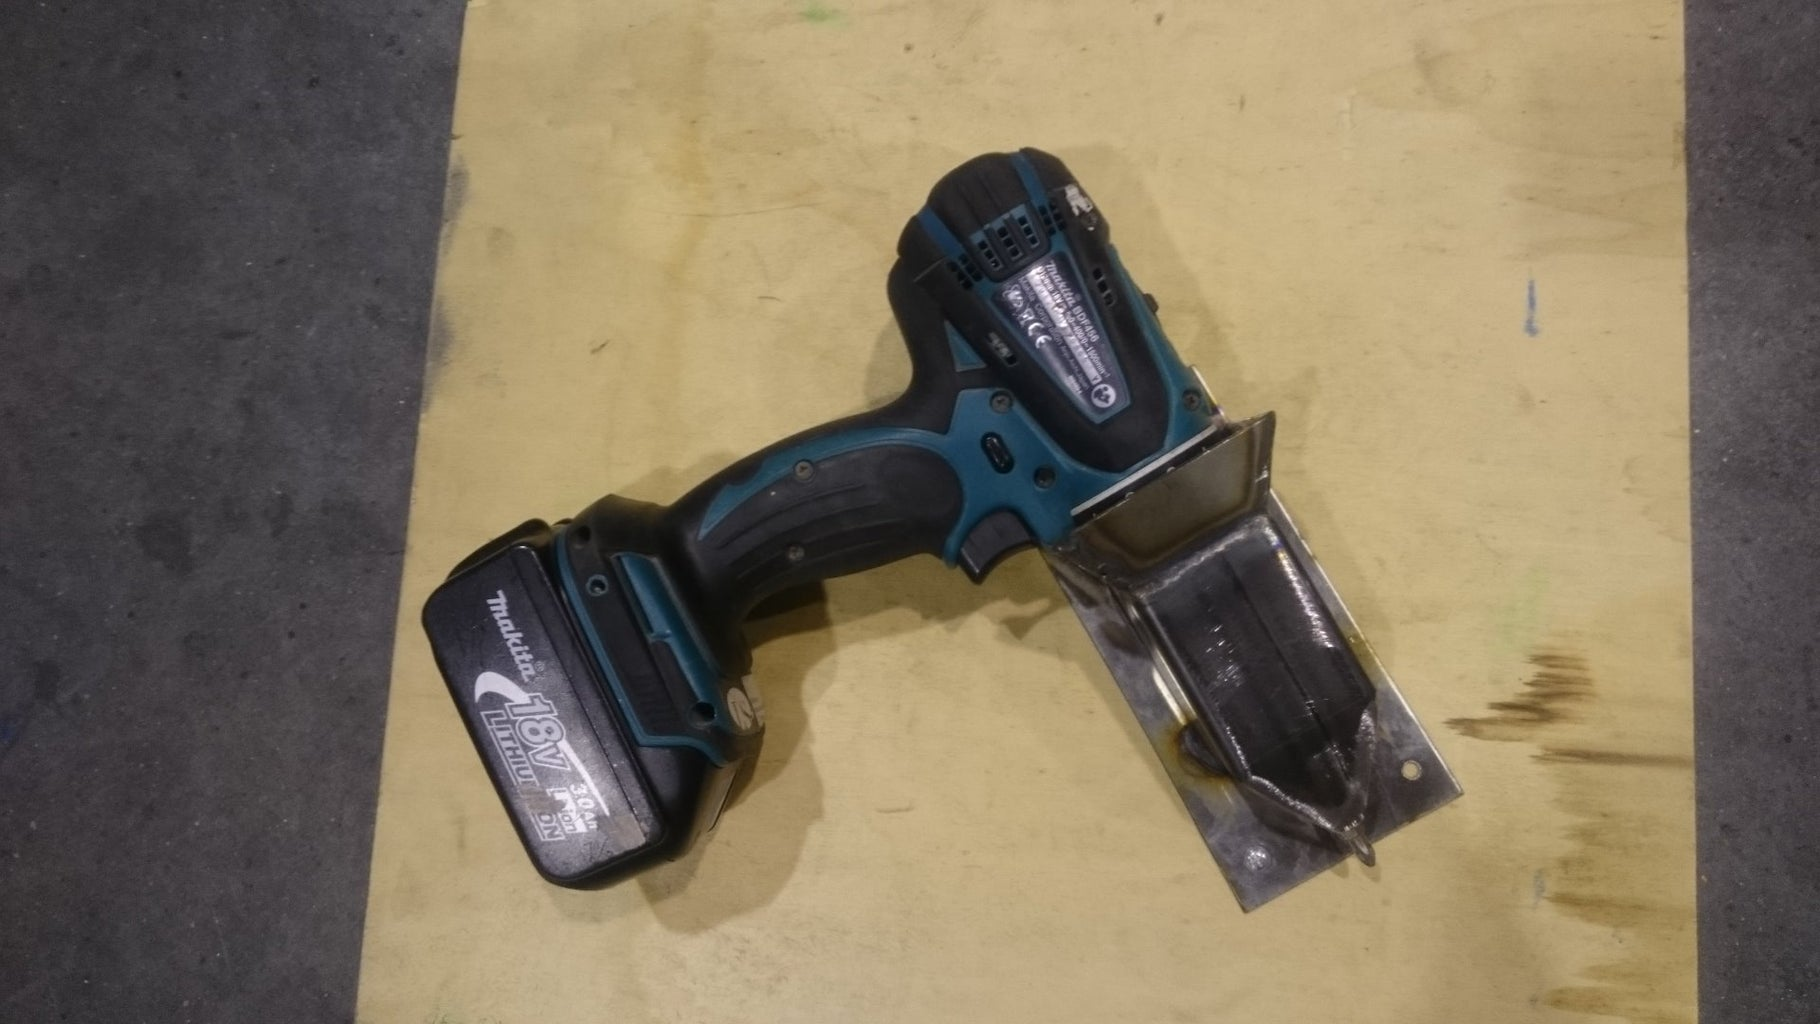 Where to Put the Cordless Drills..hmm..